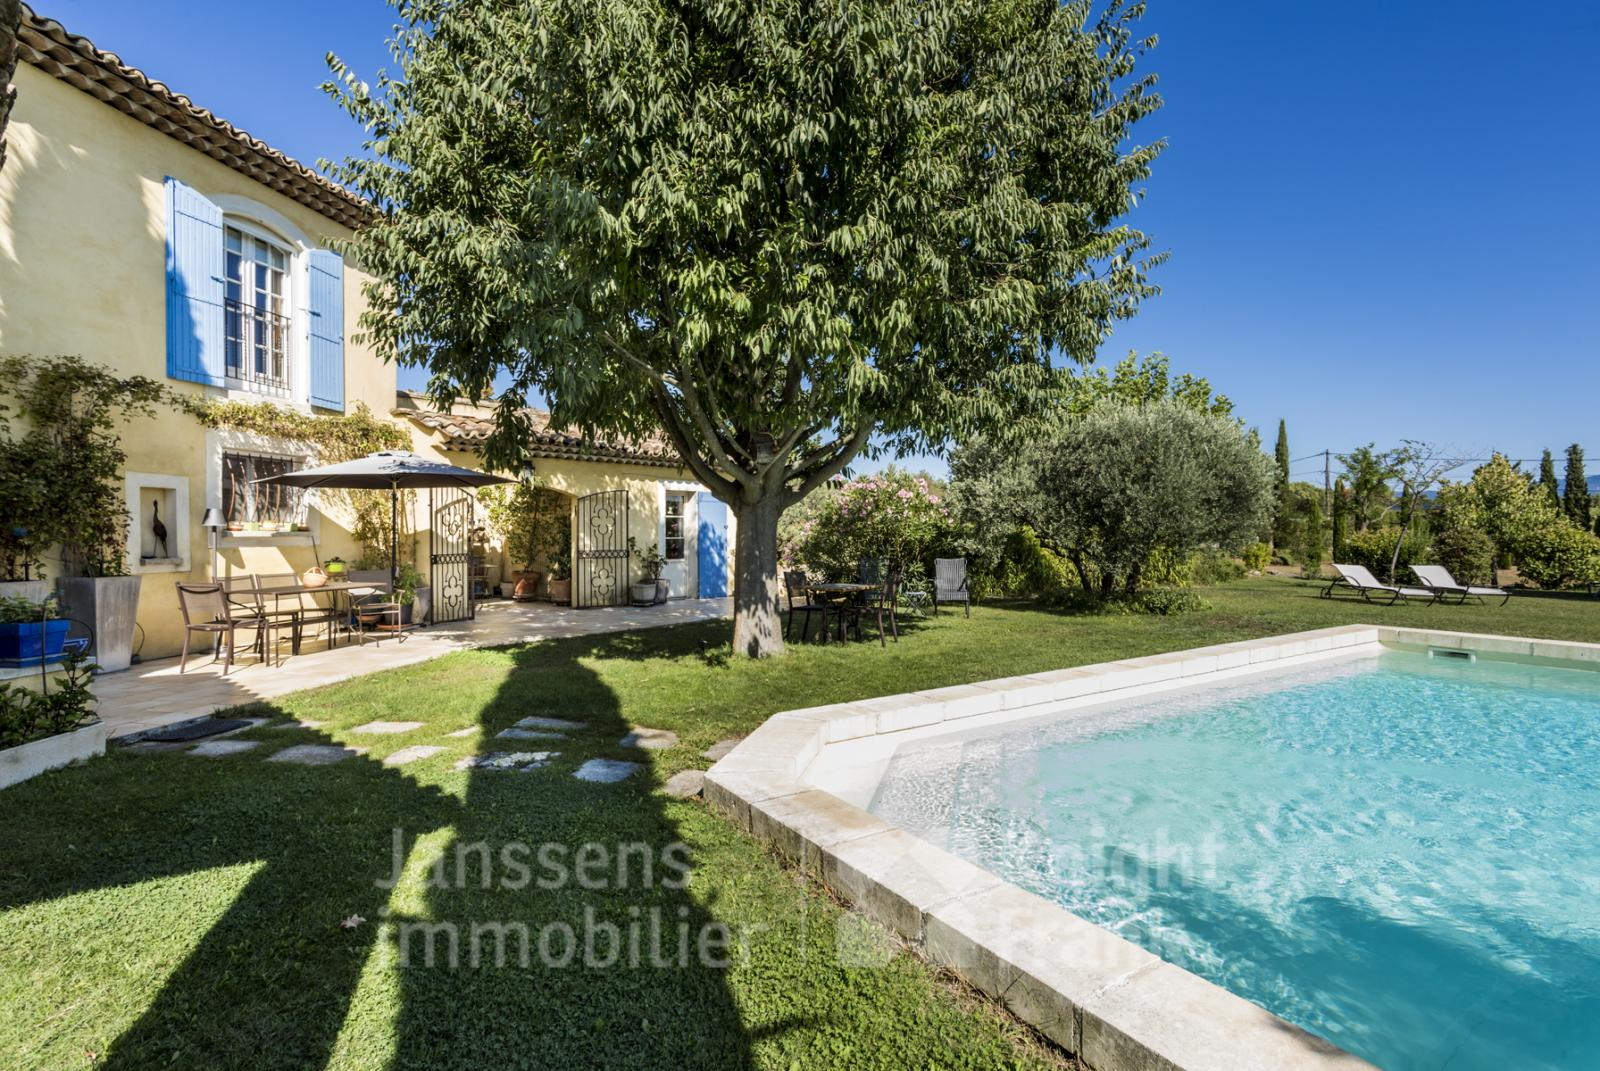 Villa With A View And Pool For Sale In St Saturnin Les Apt ... concernant Piscine Apt